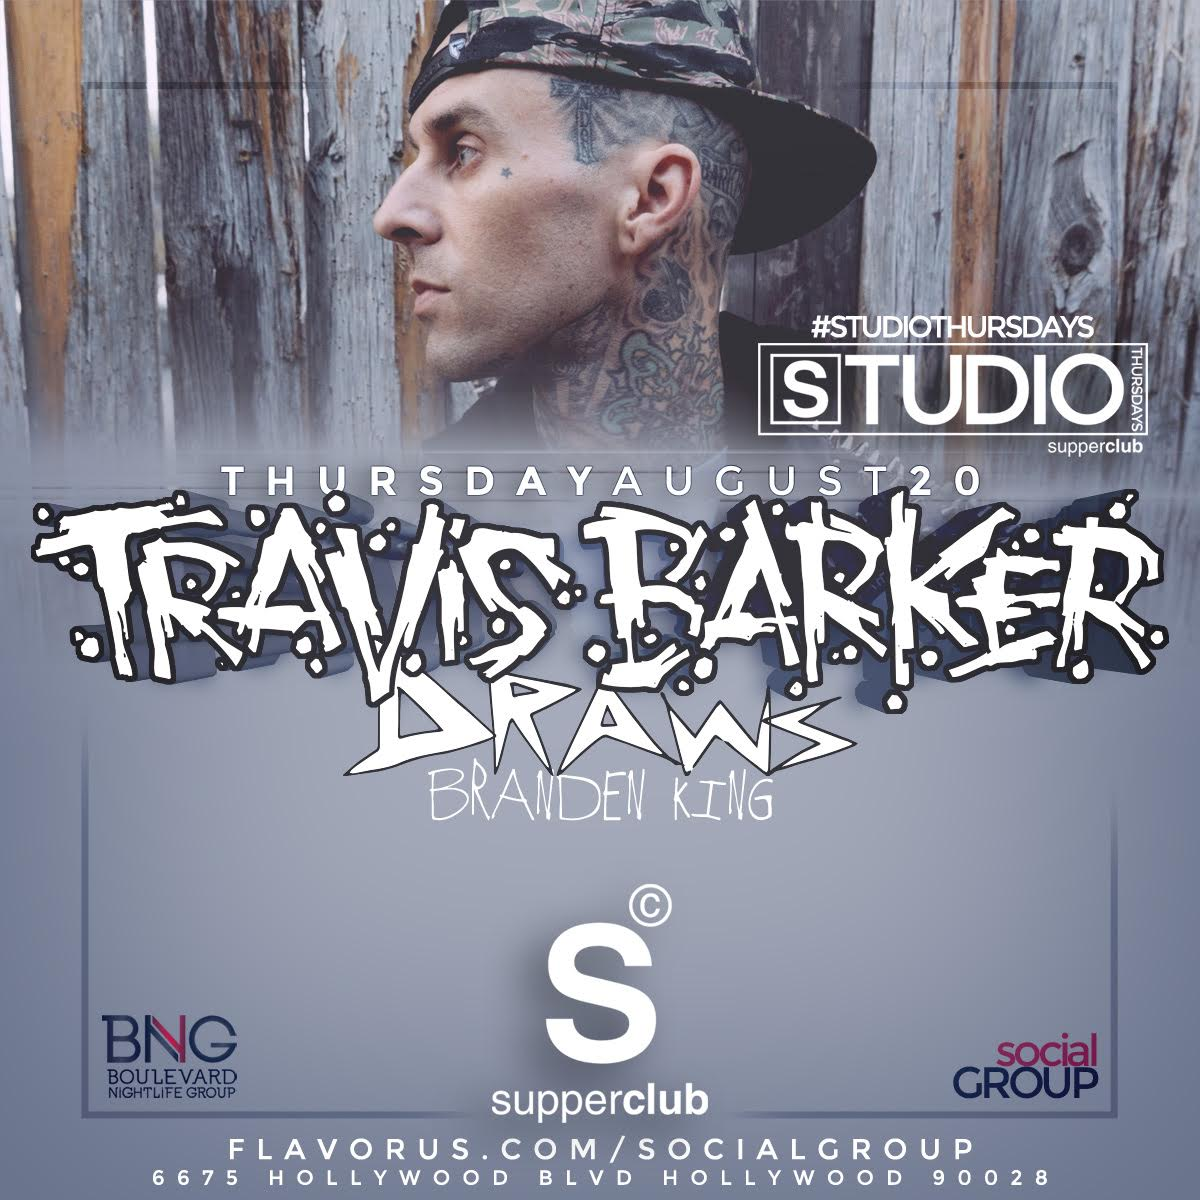 #StudioThursdays w/ @TravisBarker! #RadTimes #givethedrummersome  Tickets: http://t.co/kbF2oo3c0c http://t.co/zsauric5BA